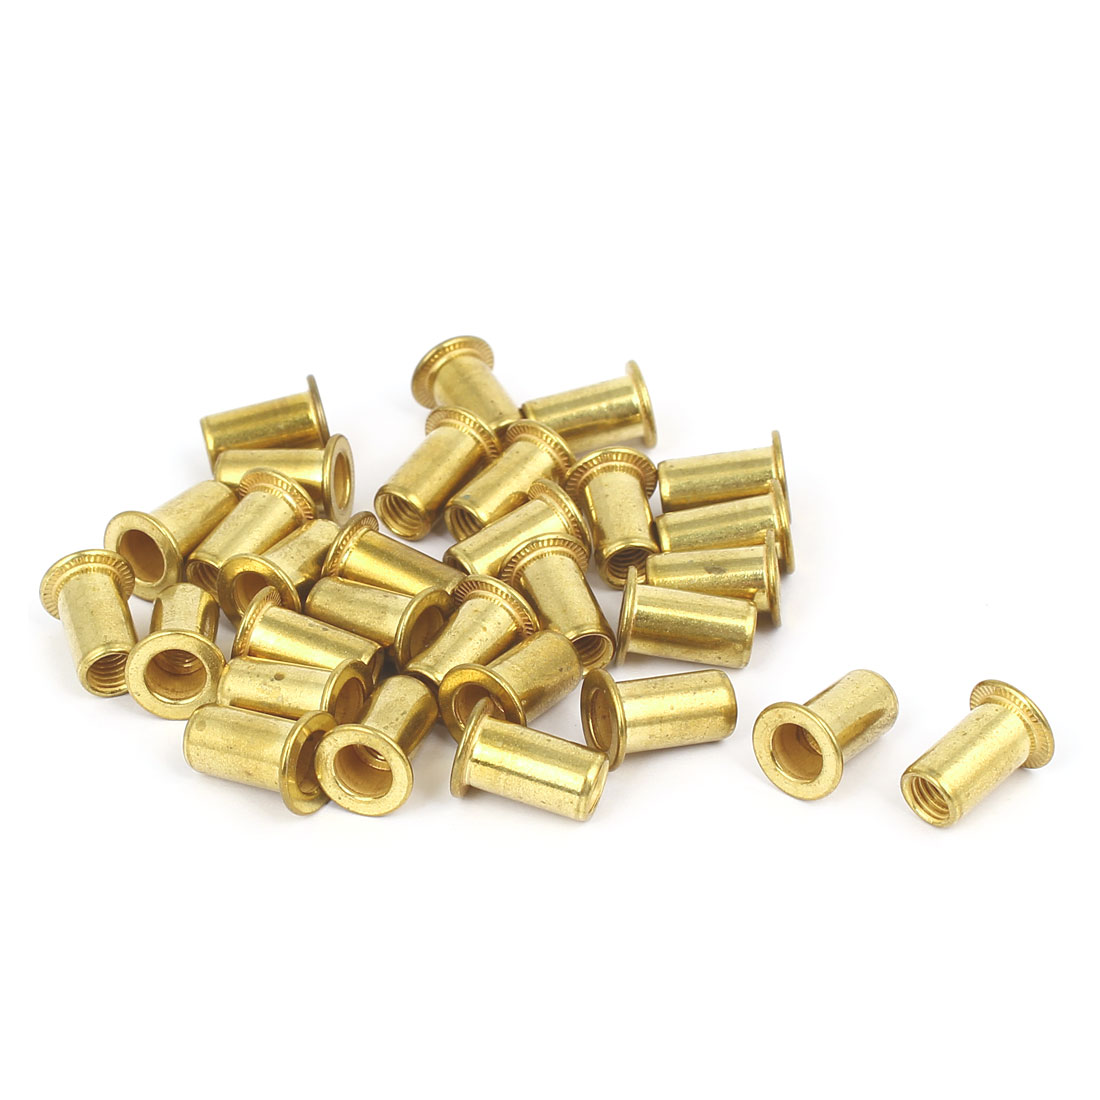 Furniture Metal Flat Head Rivet Nut Insert Nutsert M5 Thread Dia 13mm Long 30pcs